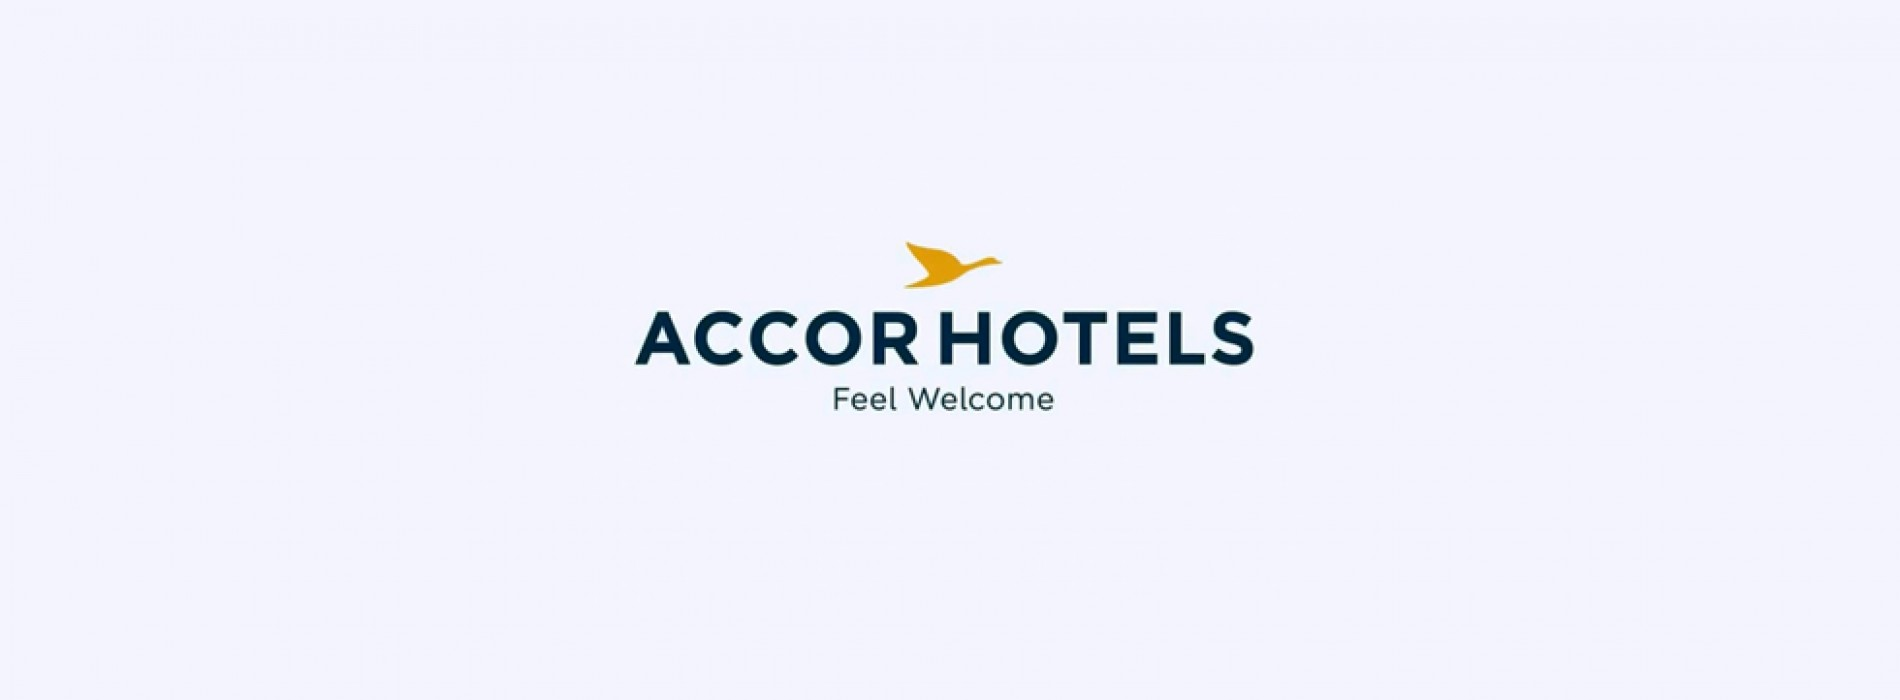 HotelInvest valued at €6.6bn by Accor